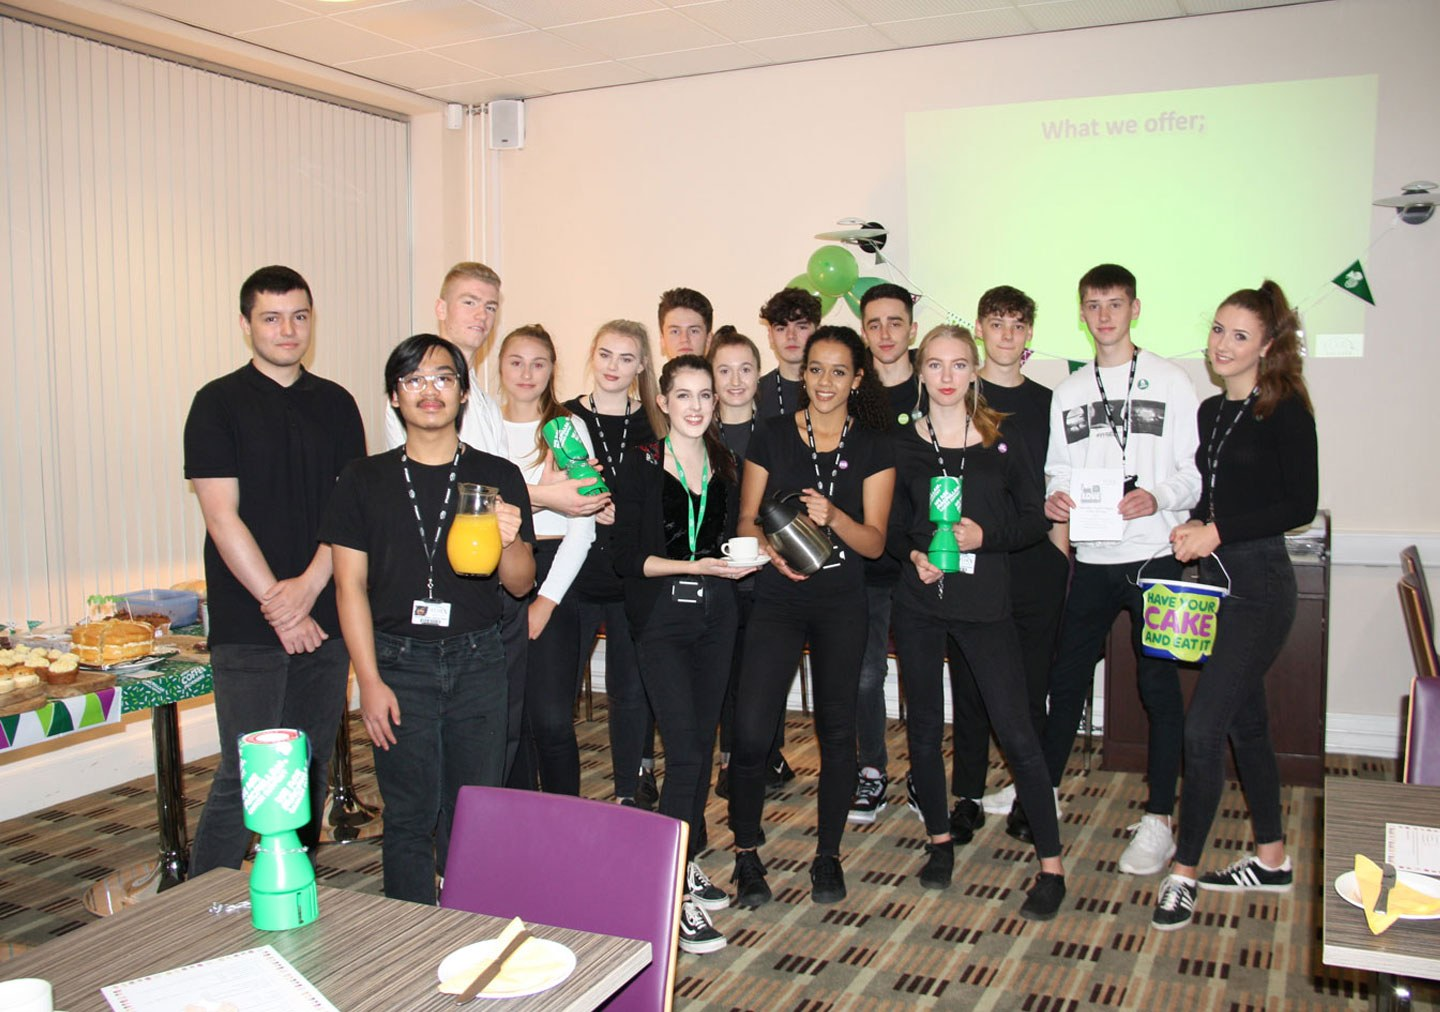 Skills for Business Diploma Level 3 students hosting a charity event